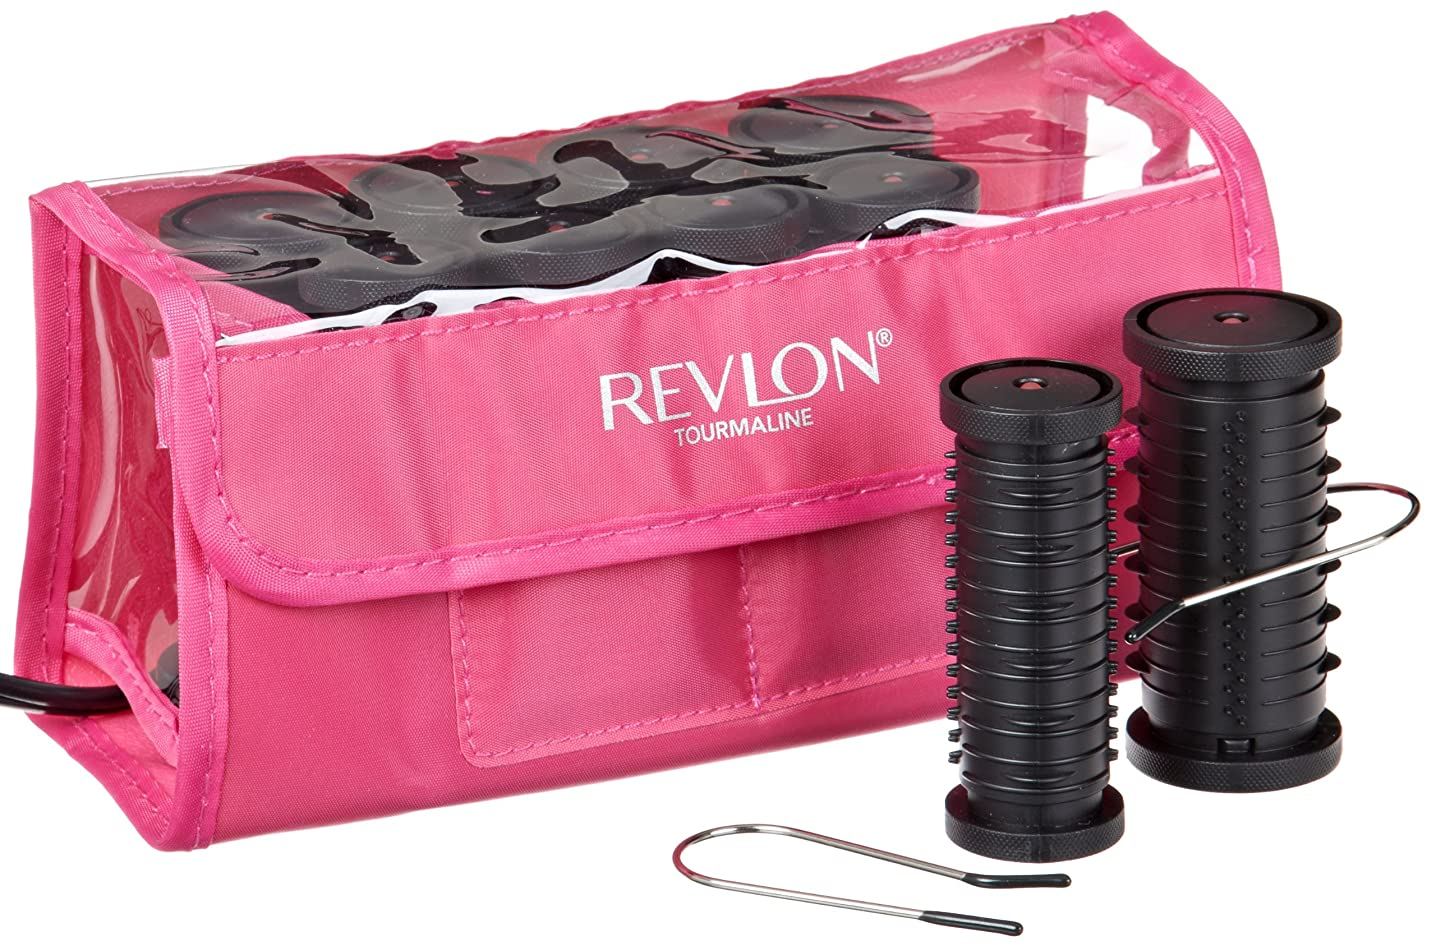 Revlon Curls-to-Go 10 Piece Travel Hot Rollers engfzgyvidp543